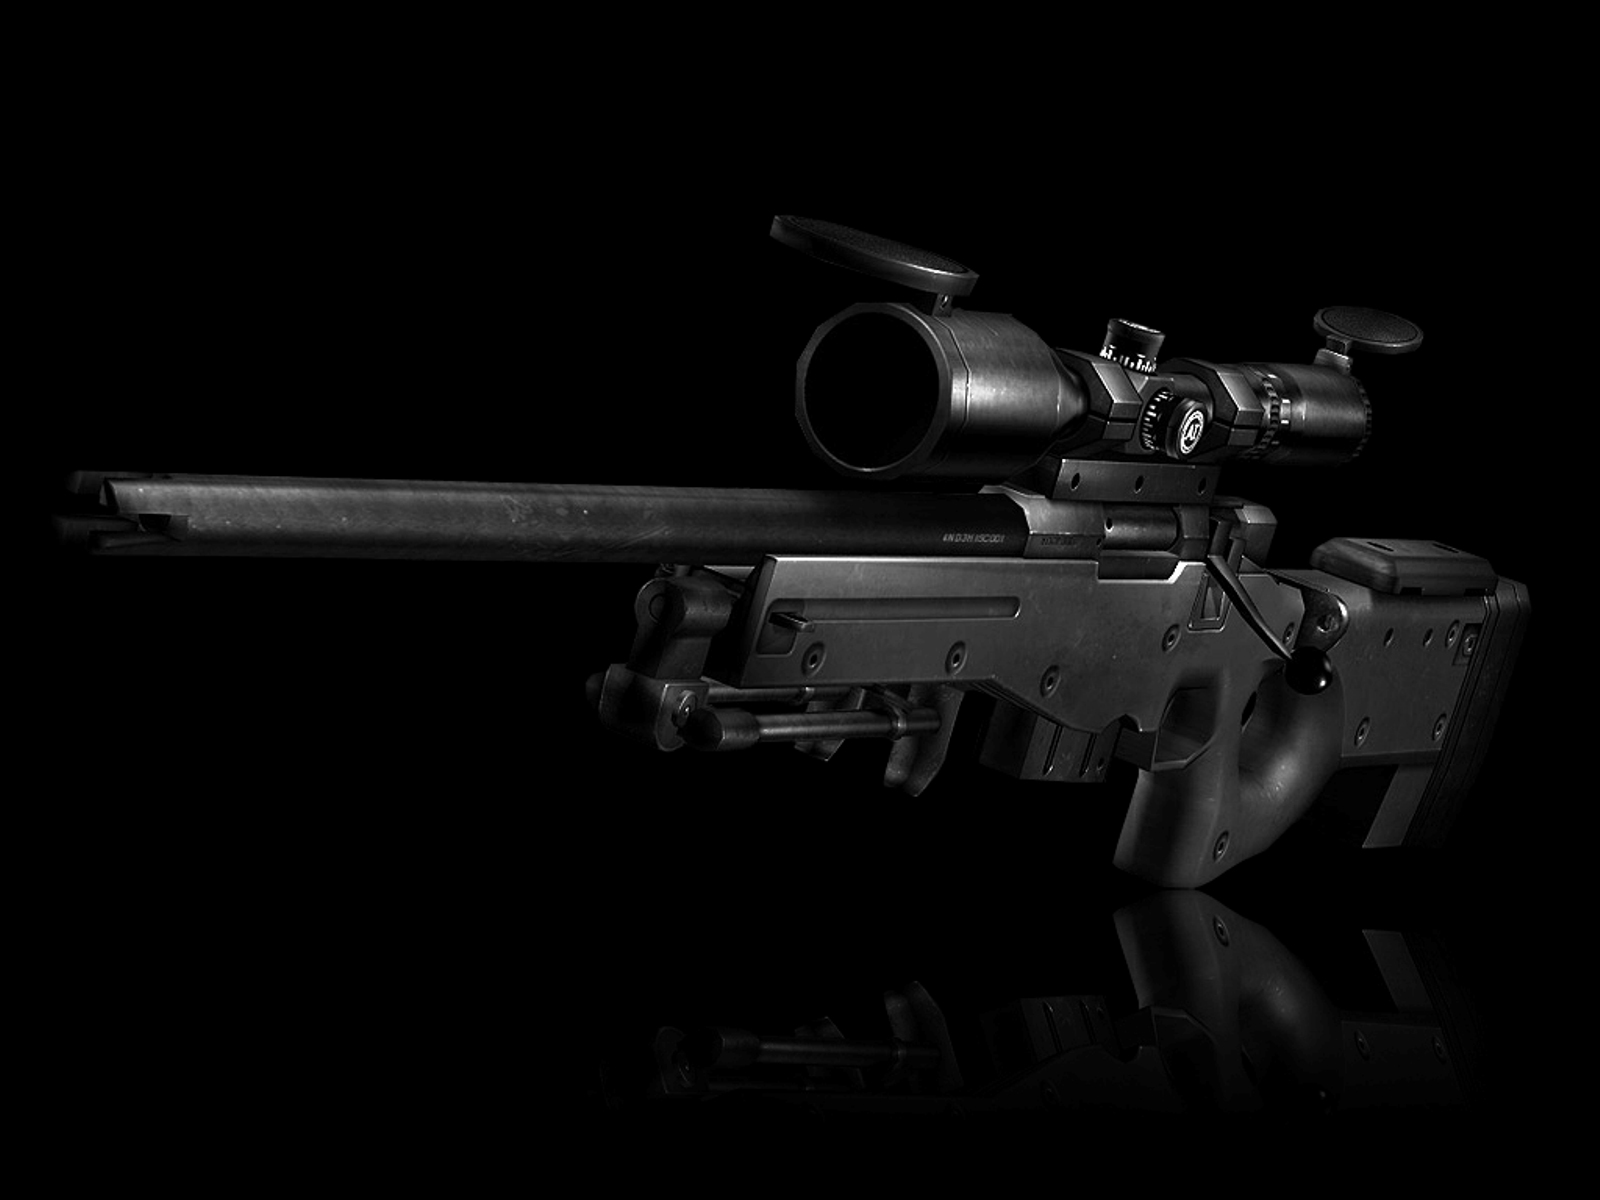 Sniper Rifle Computer Wallpapers Desktop Backgrounds 1600x1200 ID 1600x1200